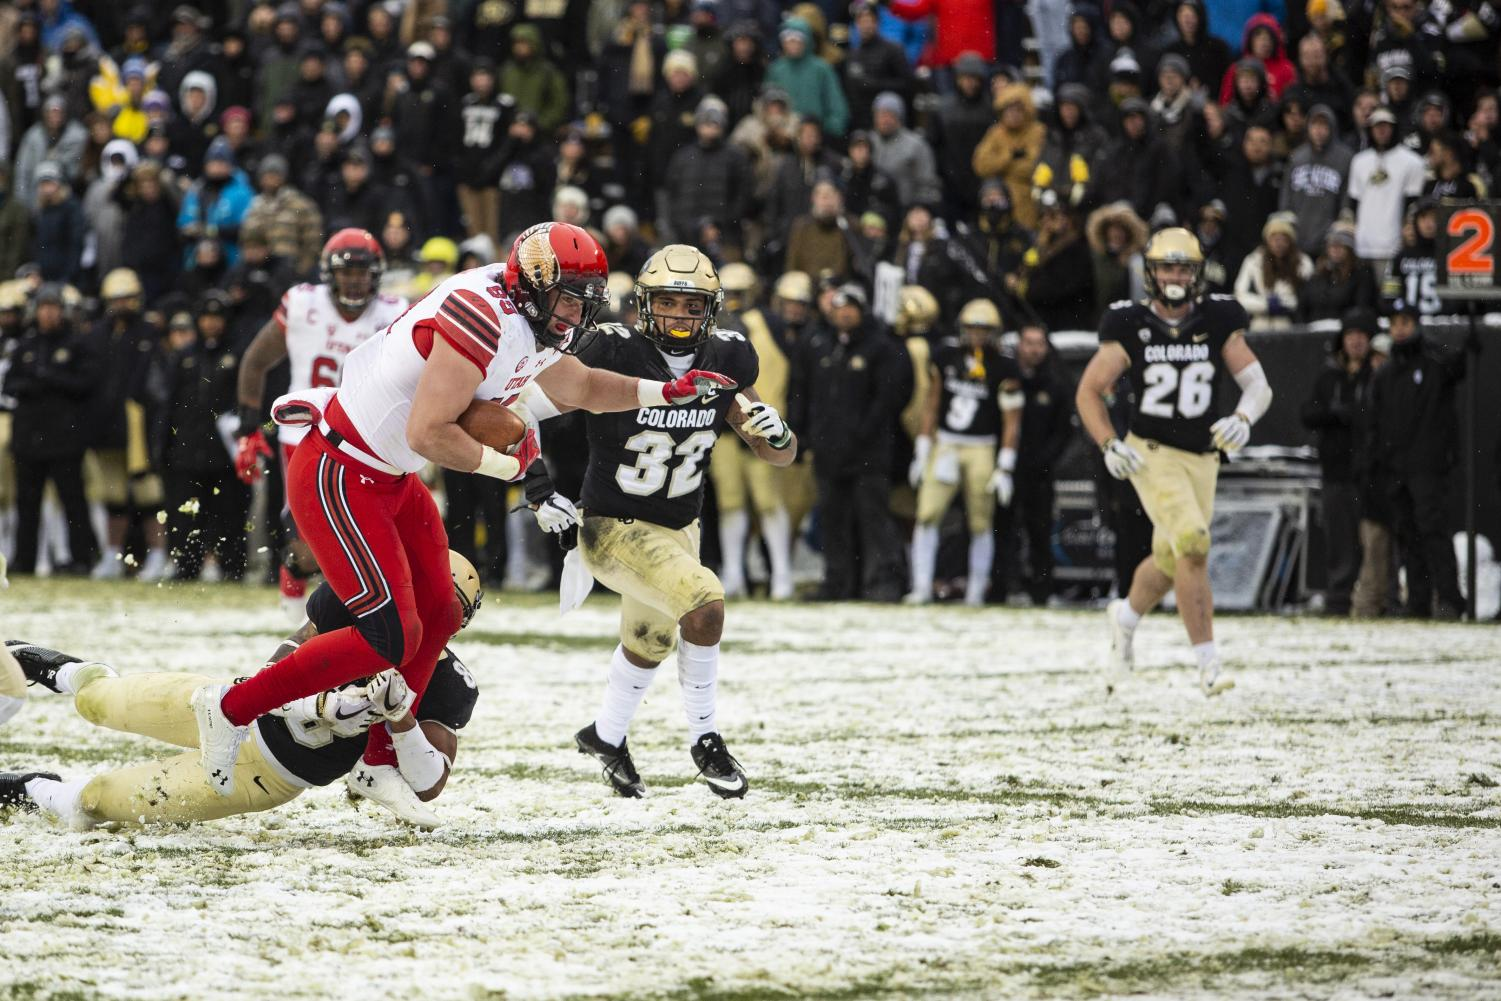 University of Utah freshman tight end Cole Fotheringham (89) gets brought down one yard short of the touchdown by University of Colorado corner back Trey Udoffia (8) at Folsom Field in Boulder, CO Saturday, Nov. 17, 2018. (Photo by: Justin Prather | The Utah Chronicle).